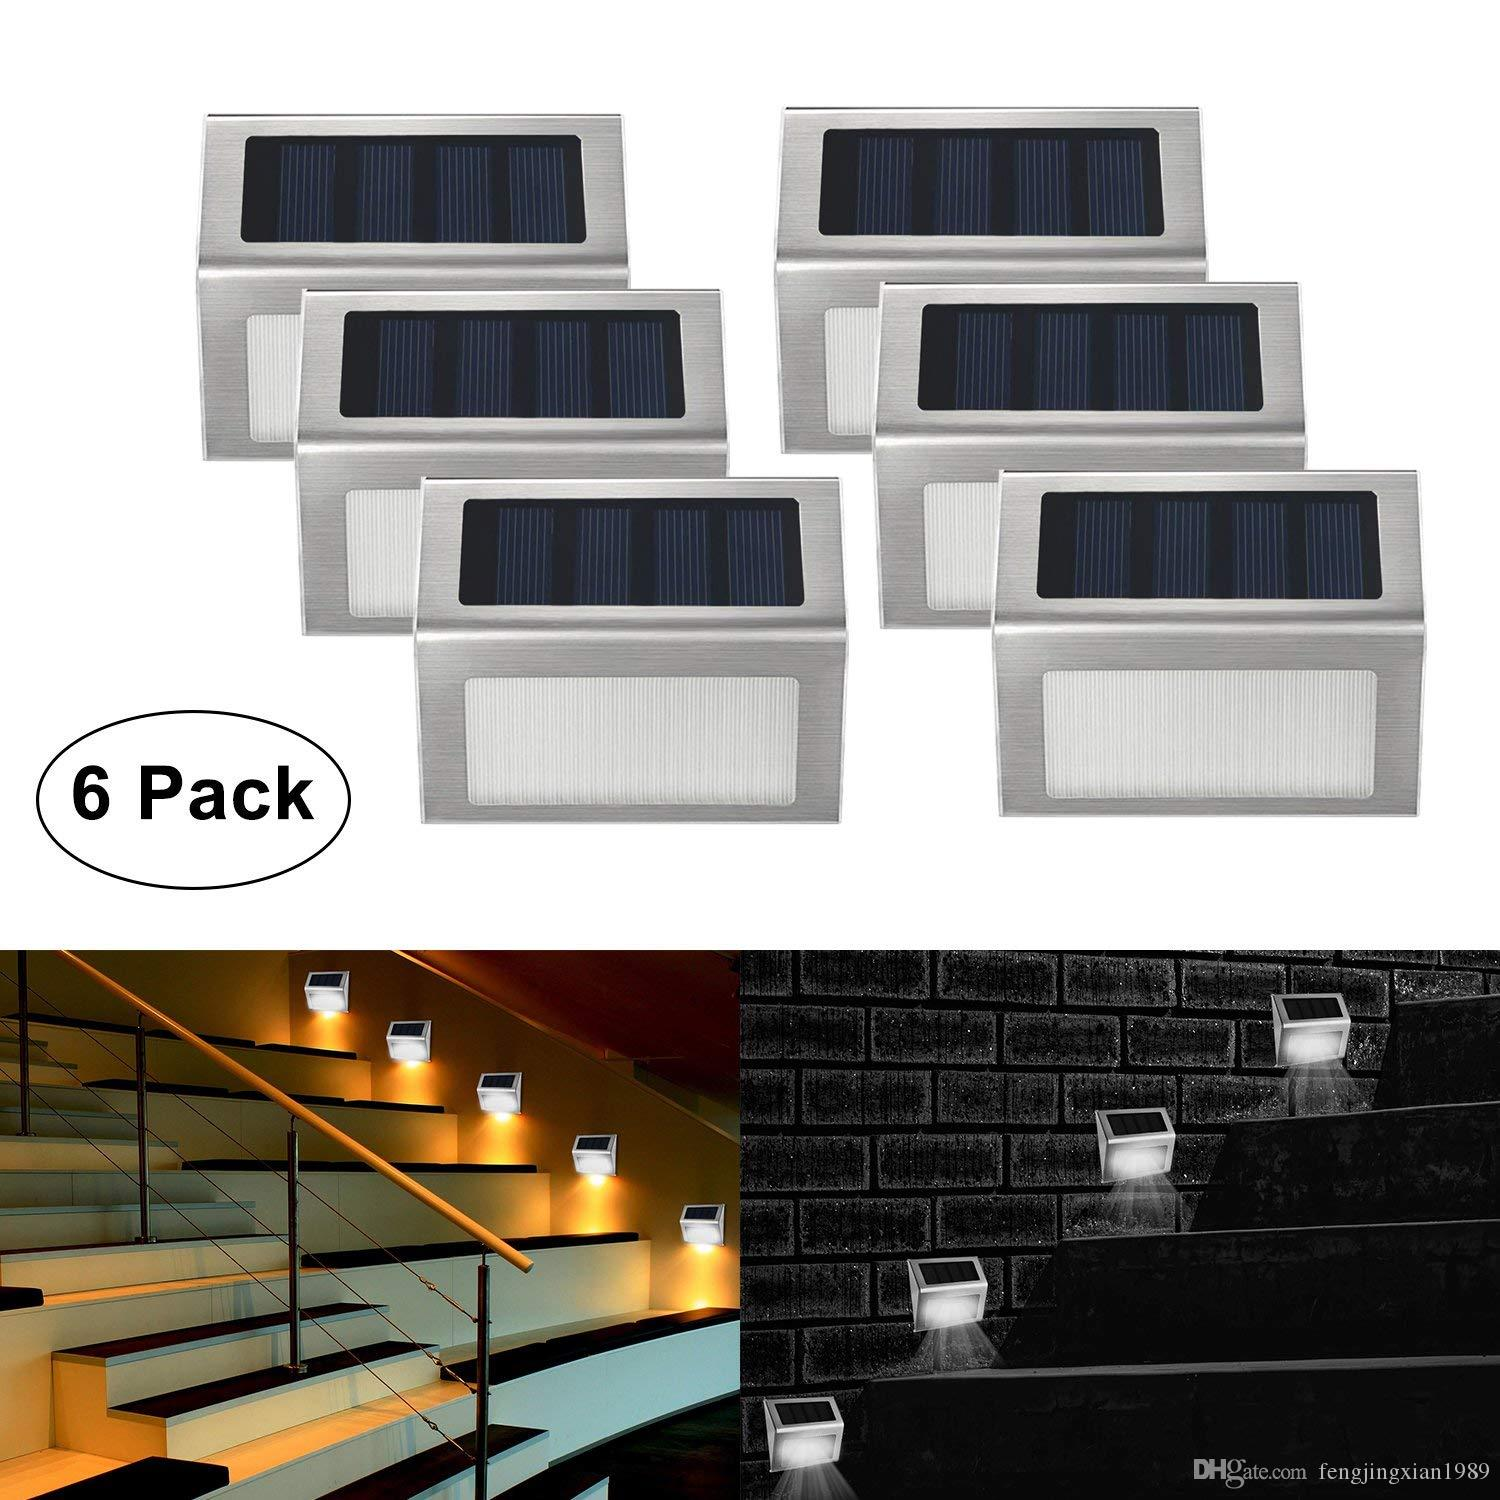 2018 Solar Stair Lights Outdoor Led Step Lighting 2 Leds Stainless Steel  For Steps Paths Patio Decks Pack Of 6 From Fengjingxian1989, $4.08 |  Dhgate.Com